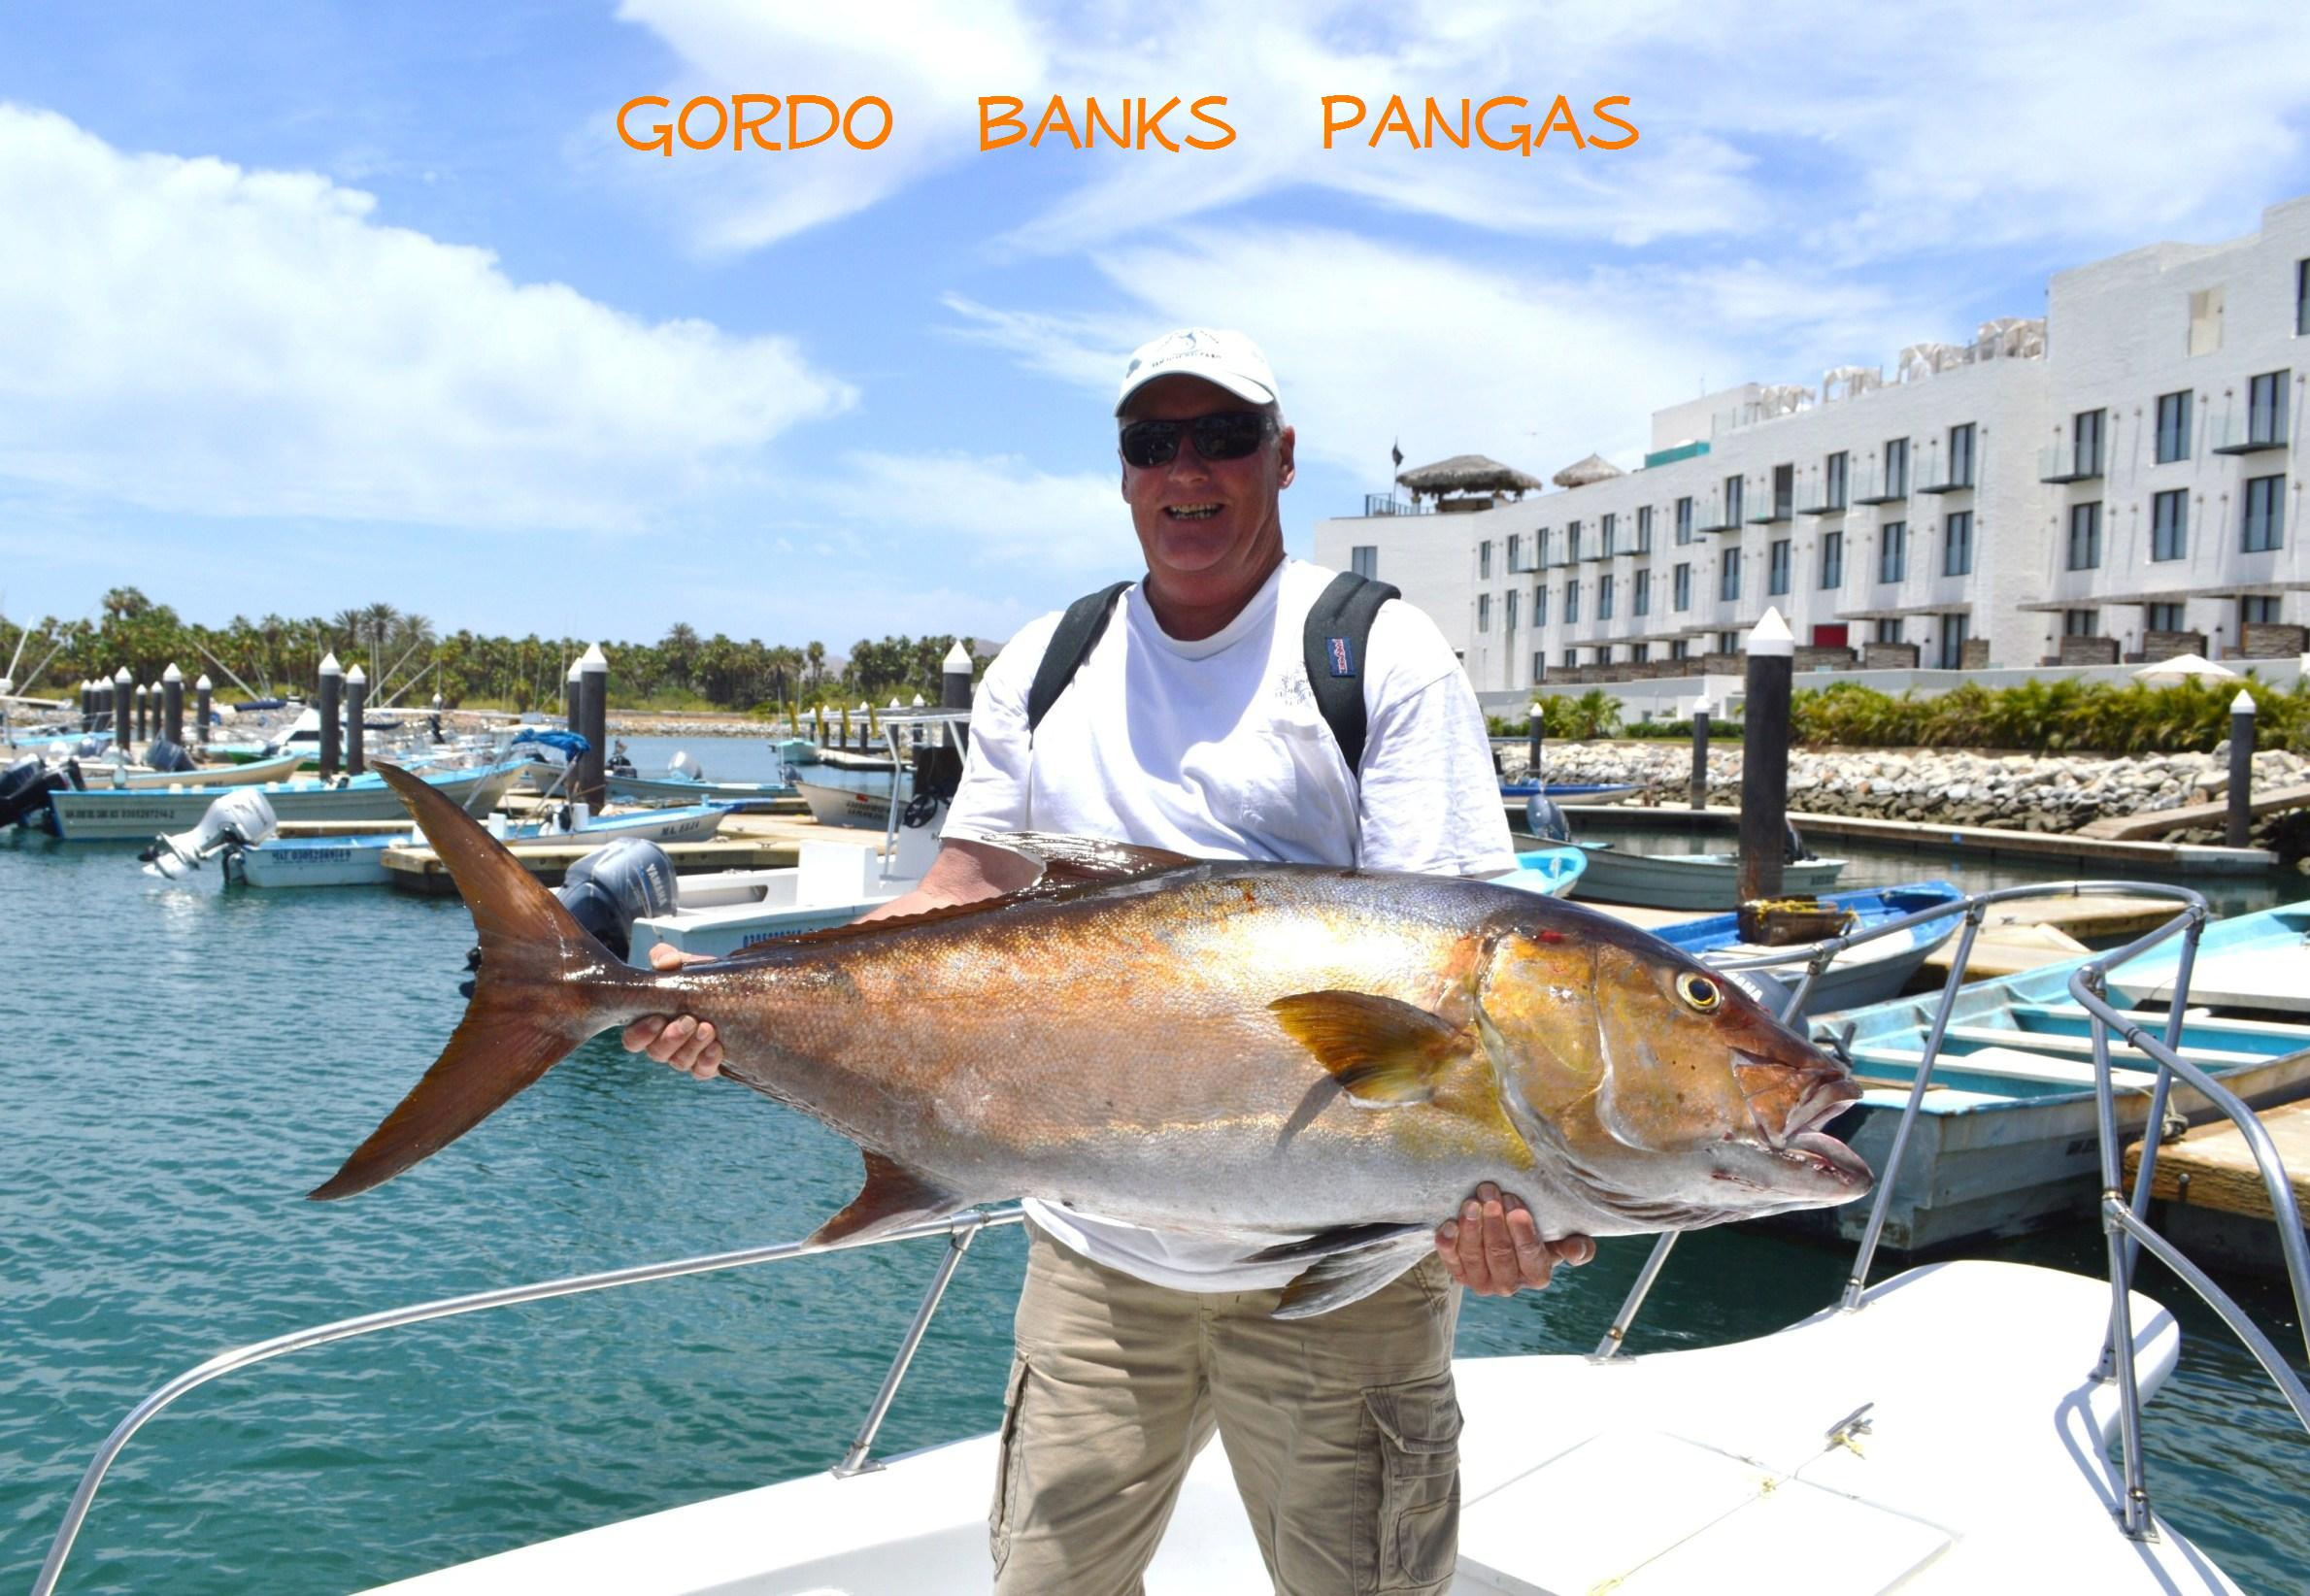 Cabo san lucas blog los cabos mexico los cabos for Cabo san lucas fishing report